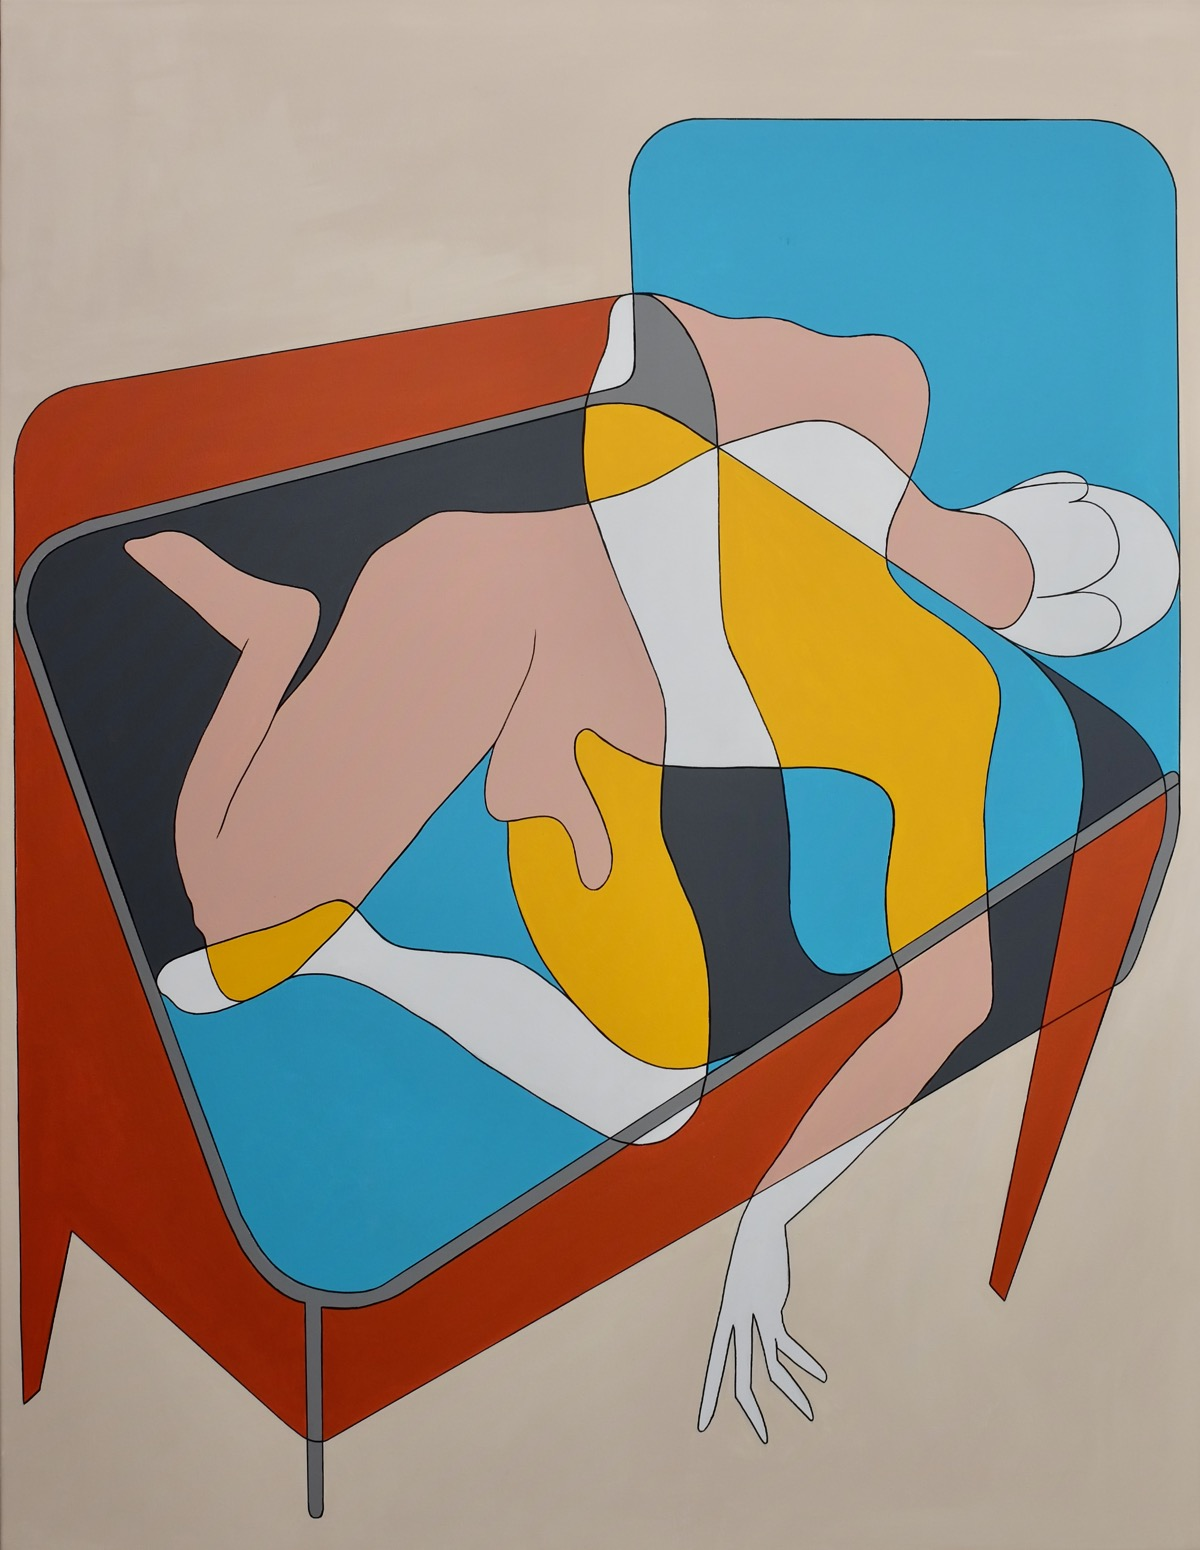 Bed (the unbearable vulnerability of being) - 155 cm x 120 cm